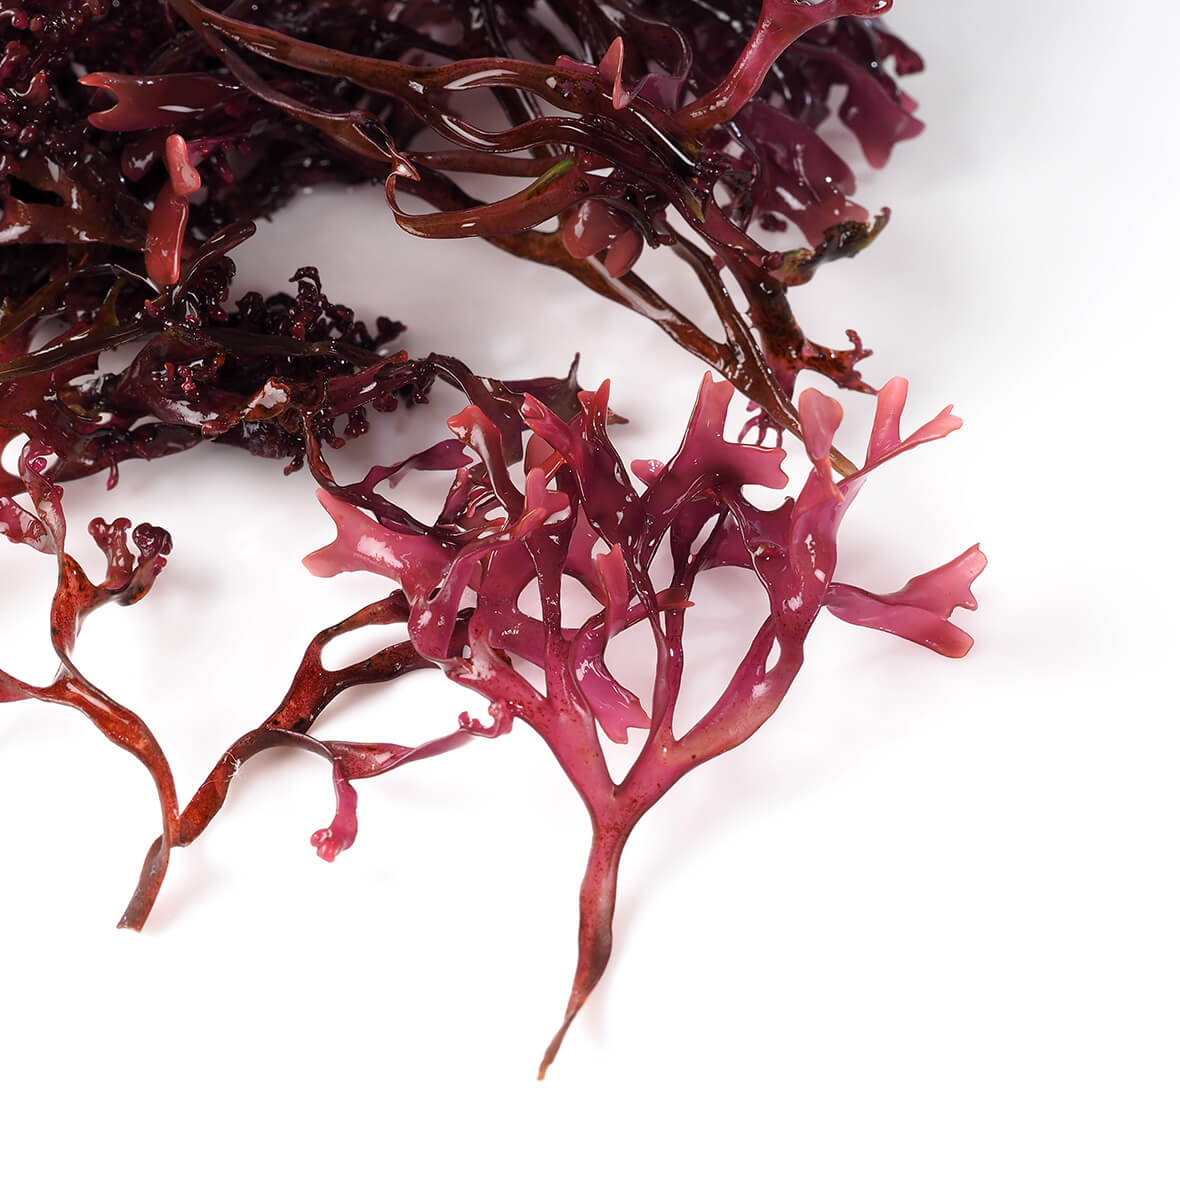 Red algae extract has a firming effect